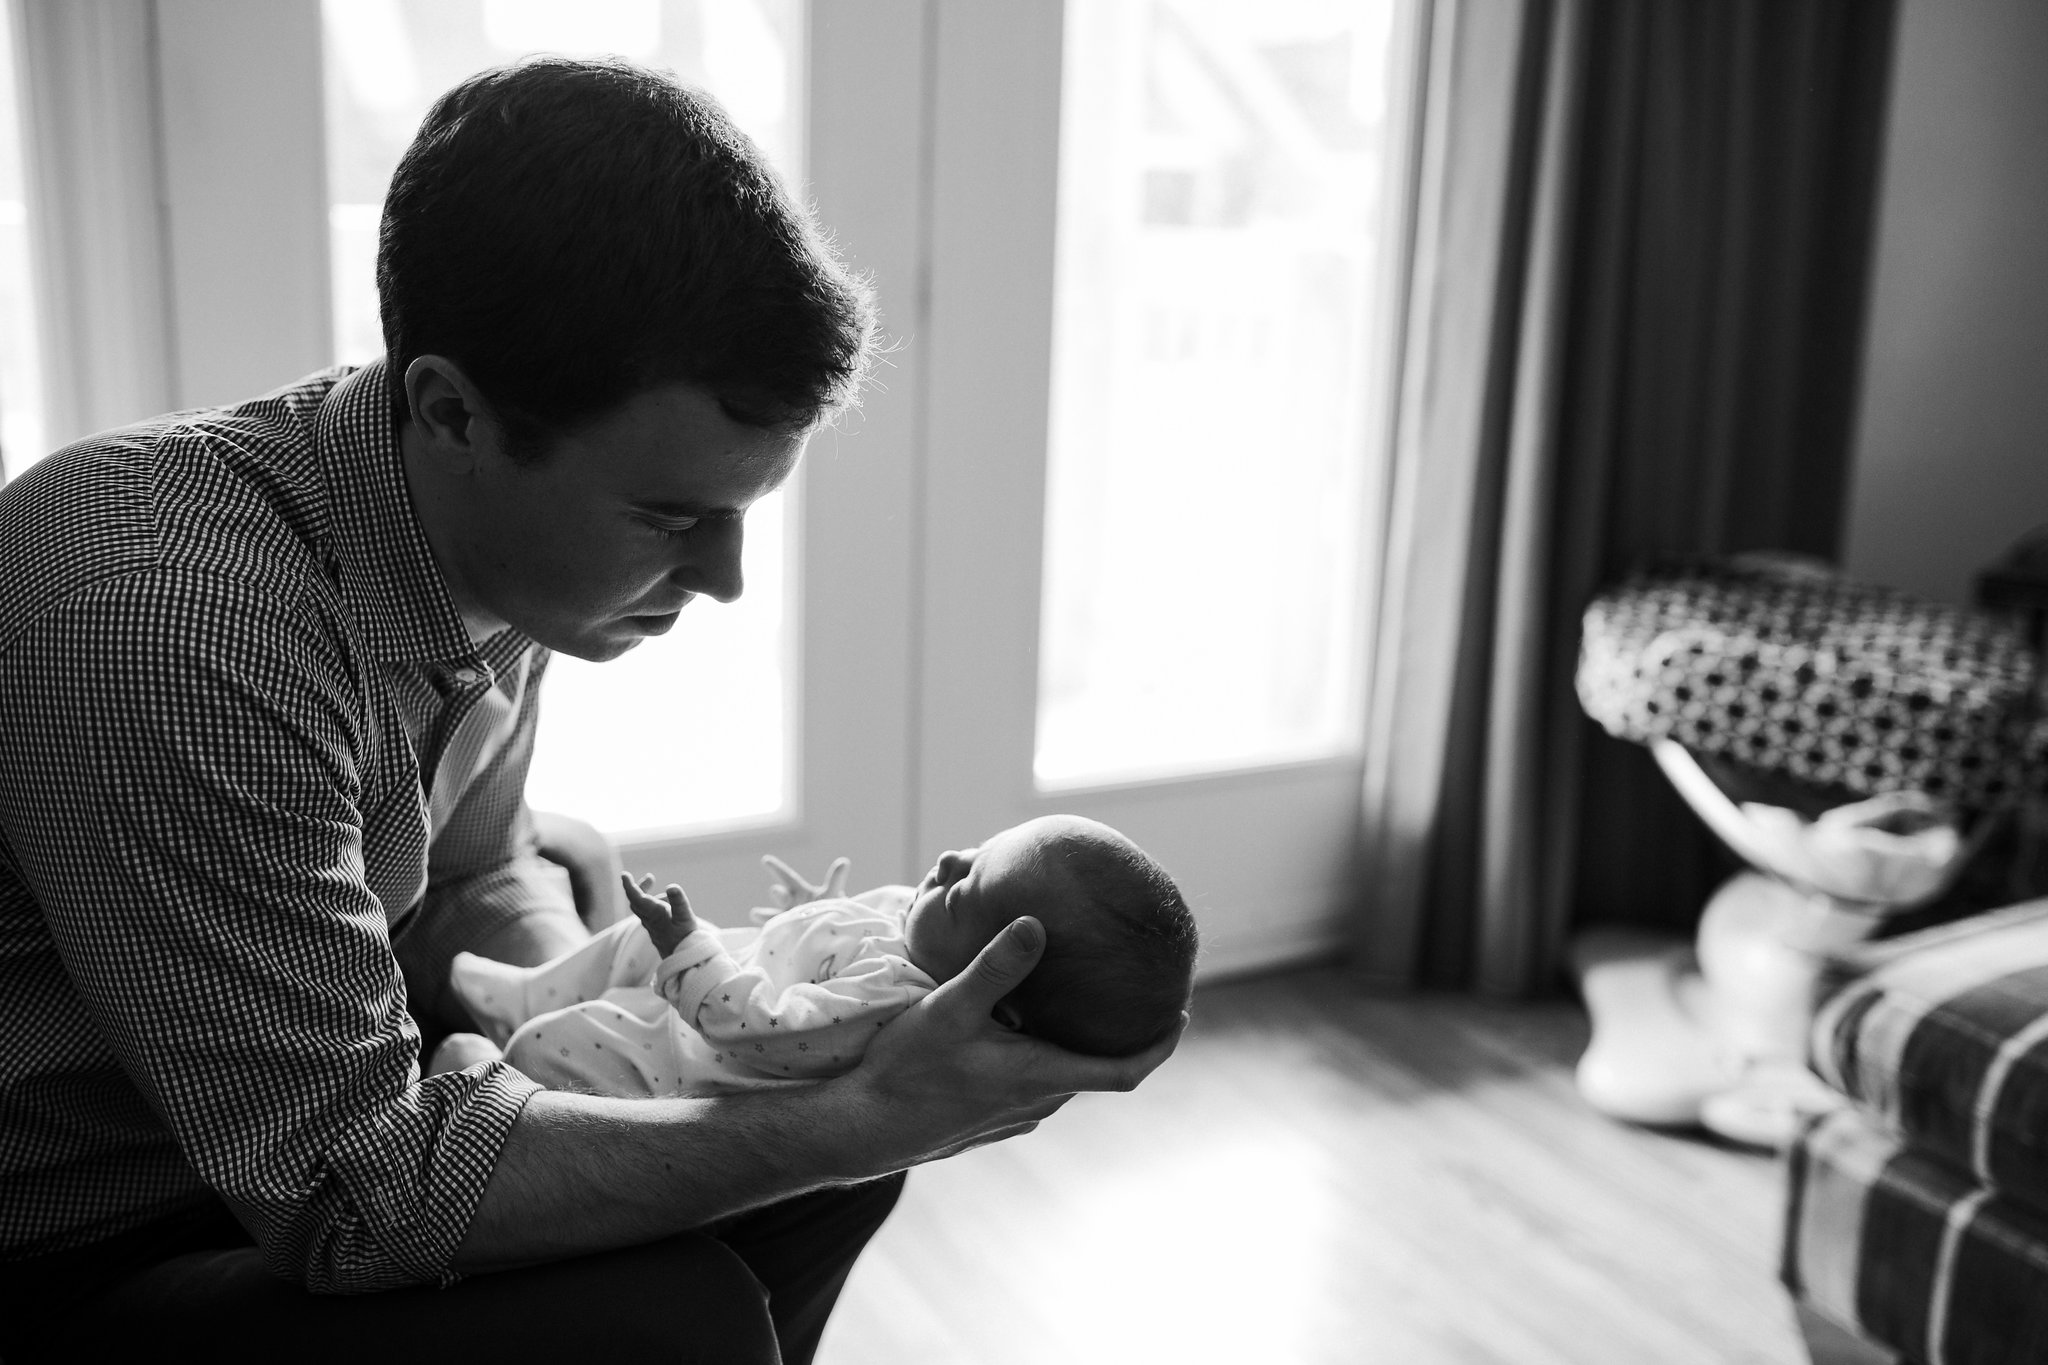 first time dad sitting in chair holding and looking at 4 week old baby girl in sleeper - Stouffville In-Home Photography